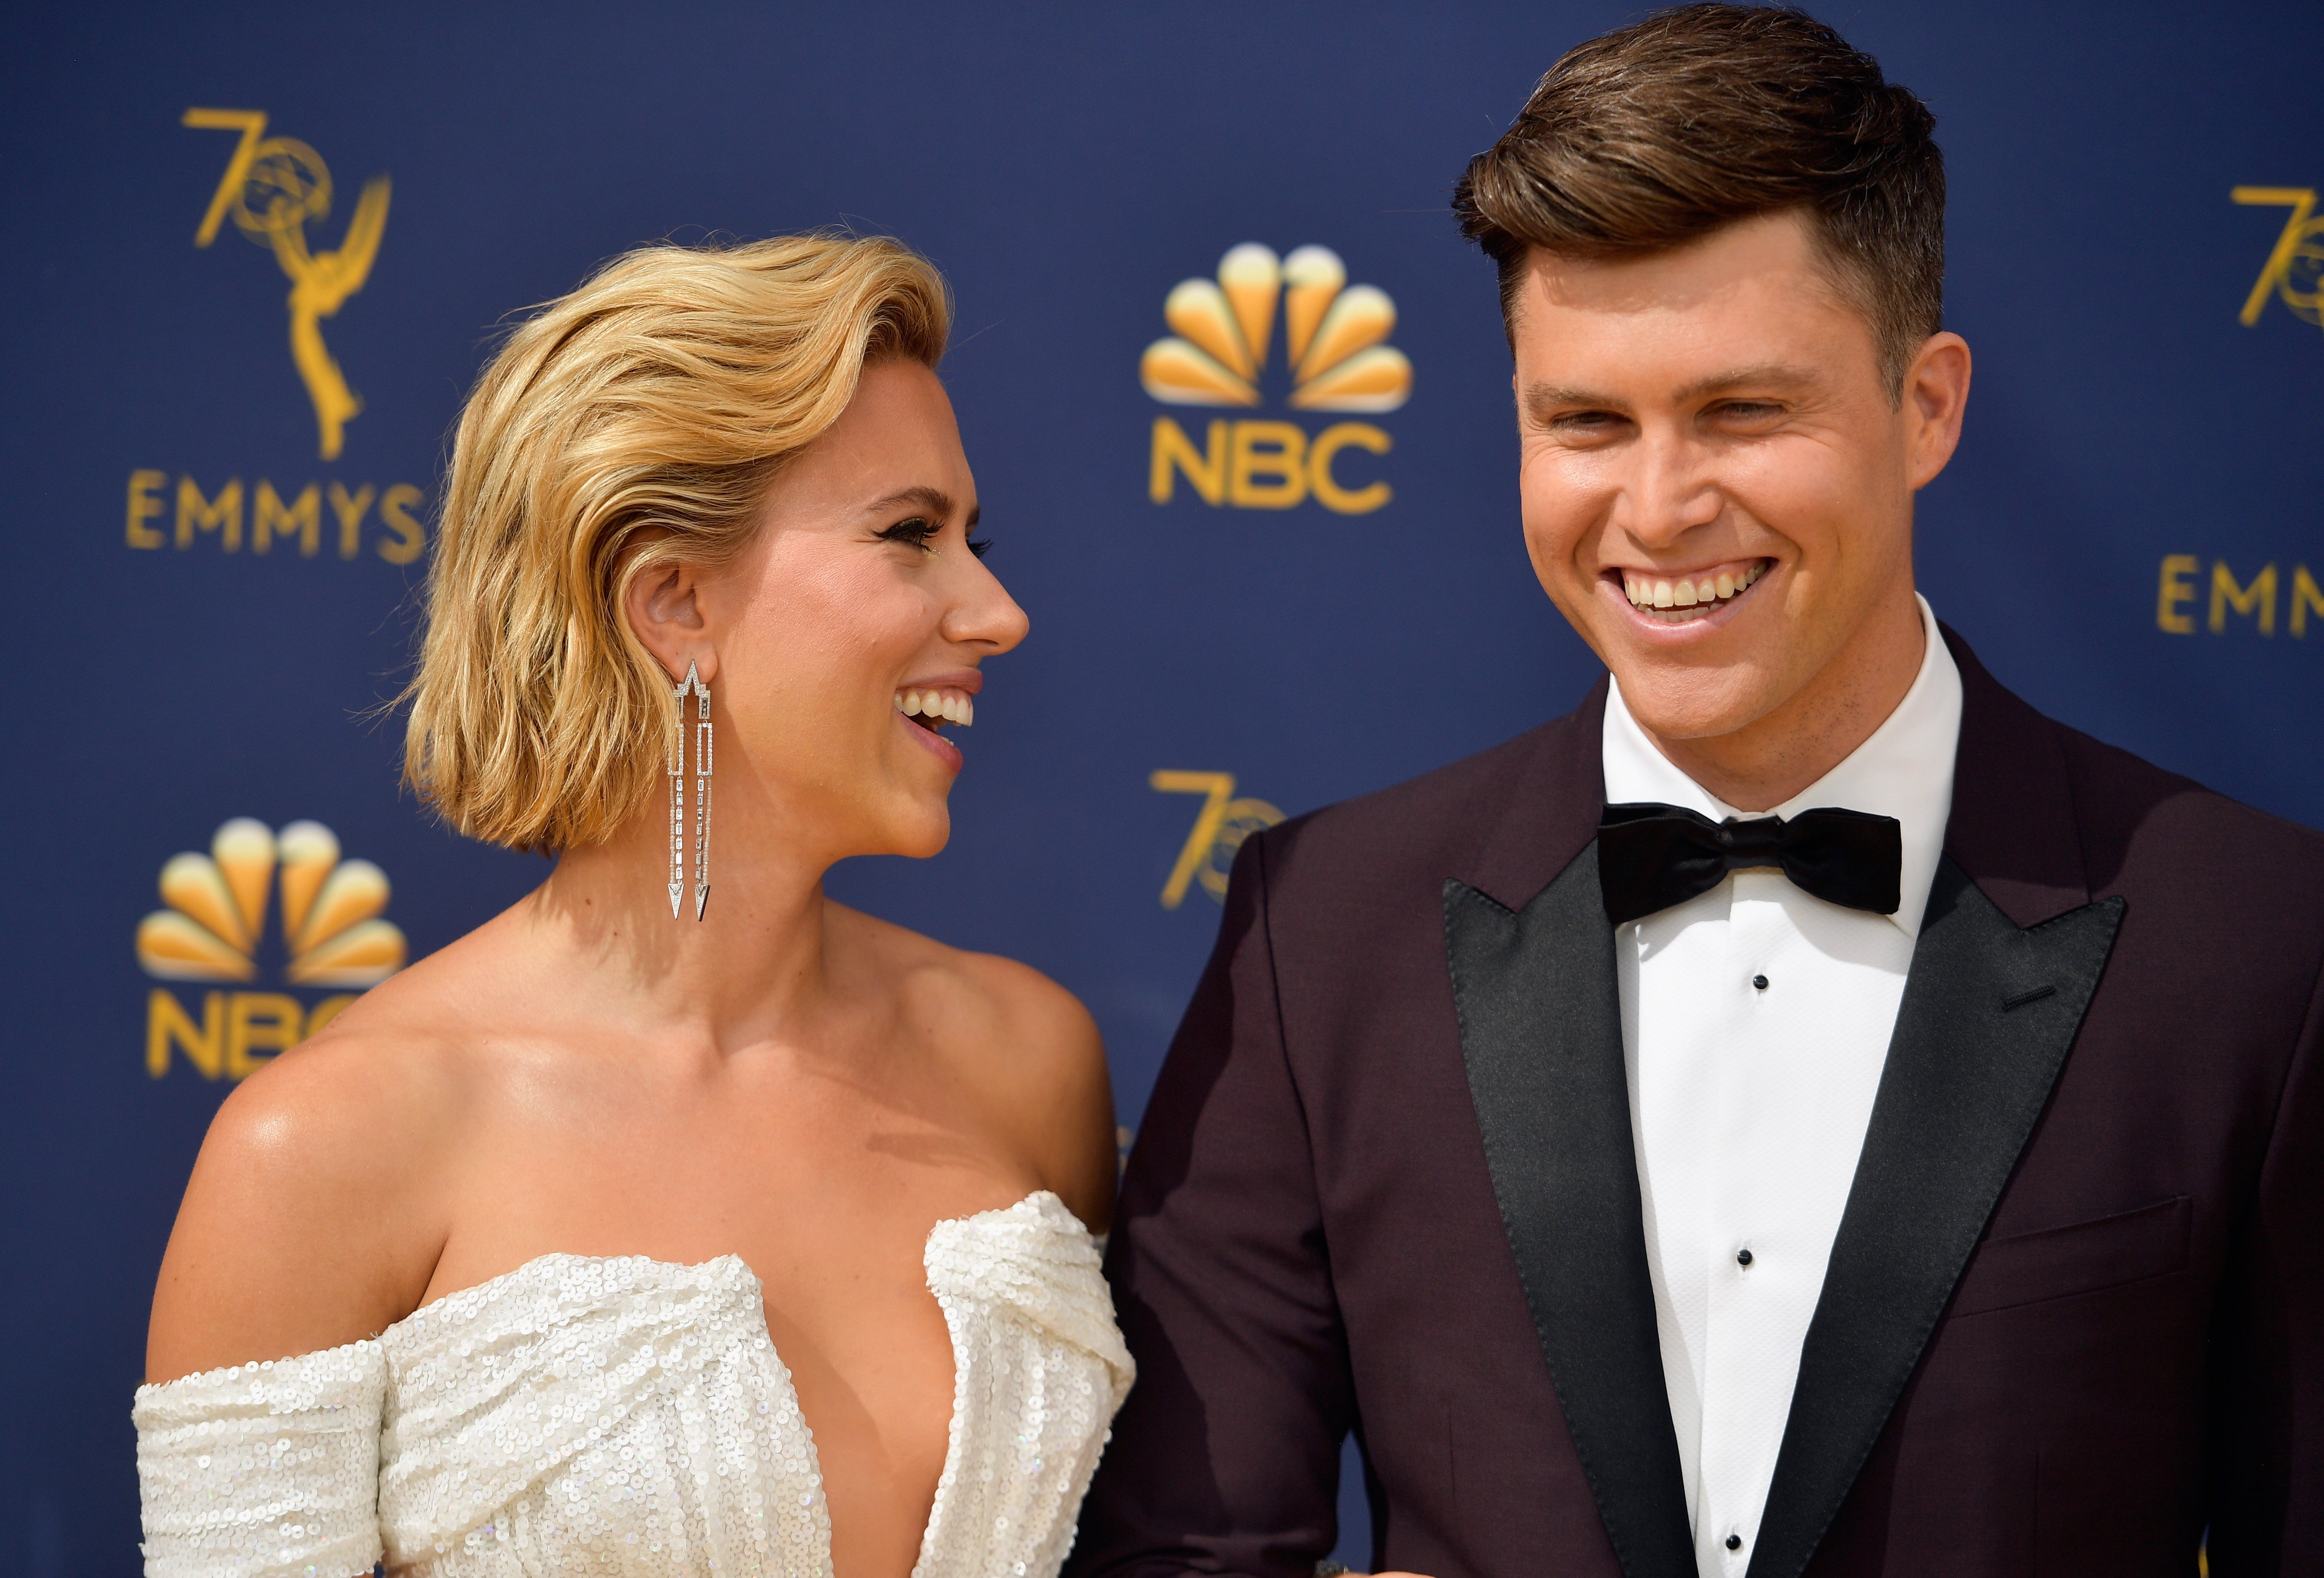 Scarlett Johansso and Colin Jost at the 70th Emmy Awards at Microsoft Theater on September 17, 2018 in Los Angeles, California. | Source: Getty Images